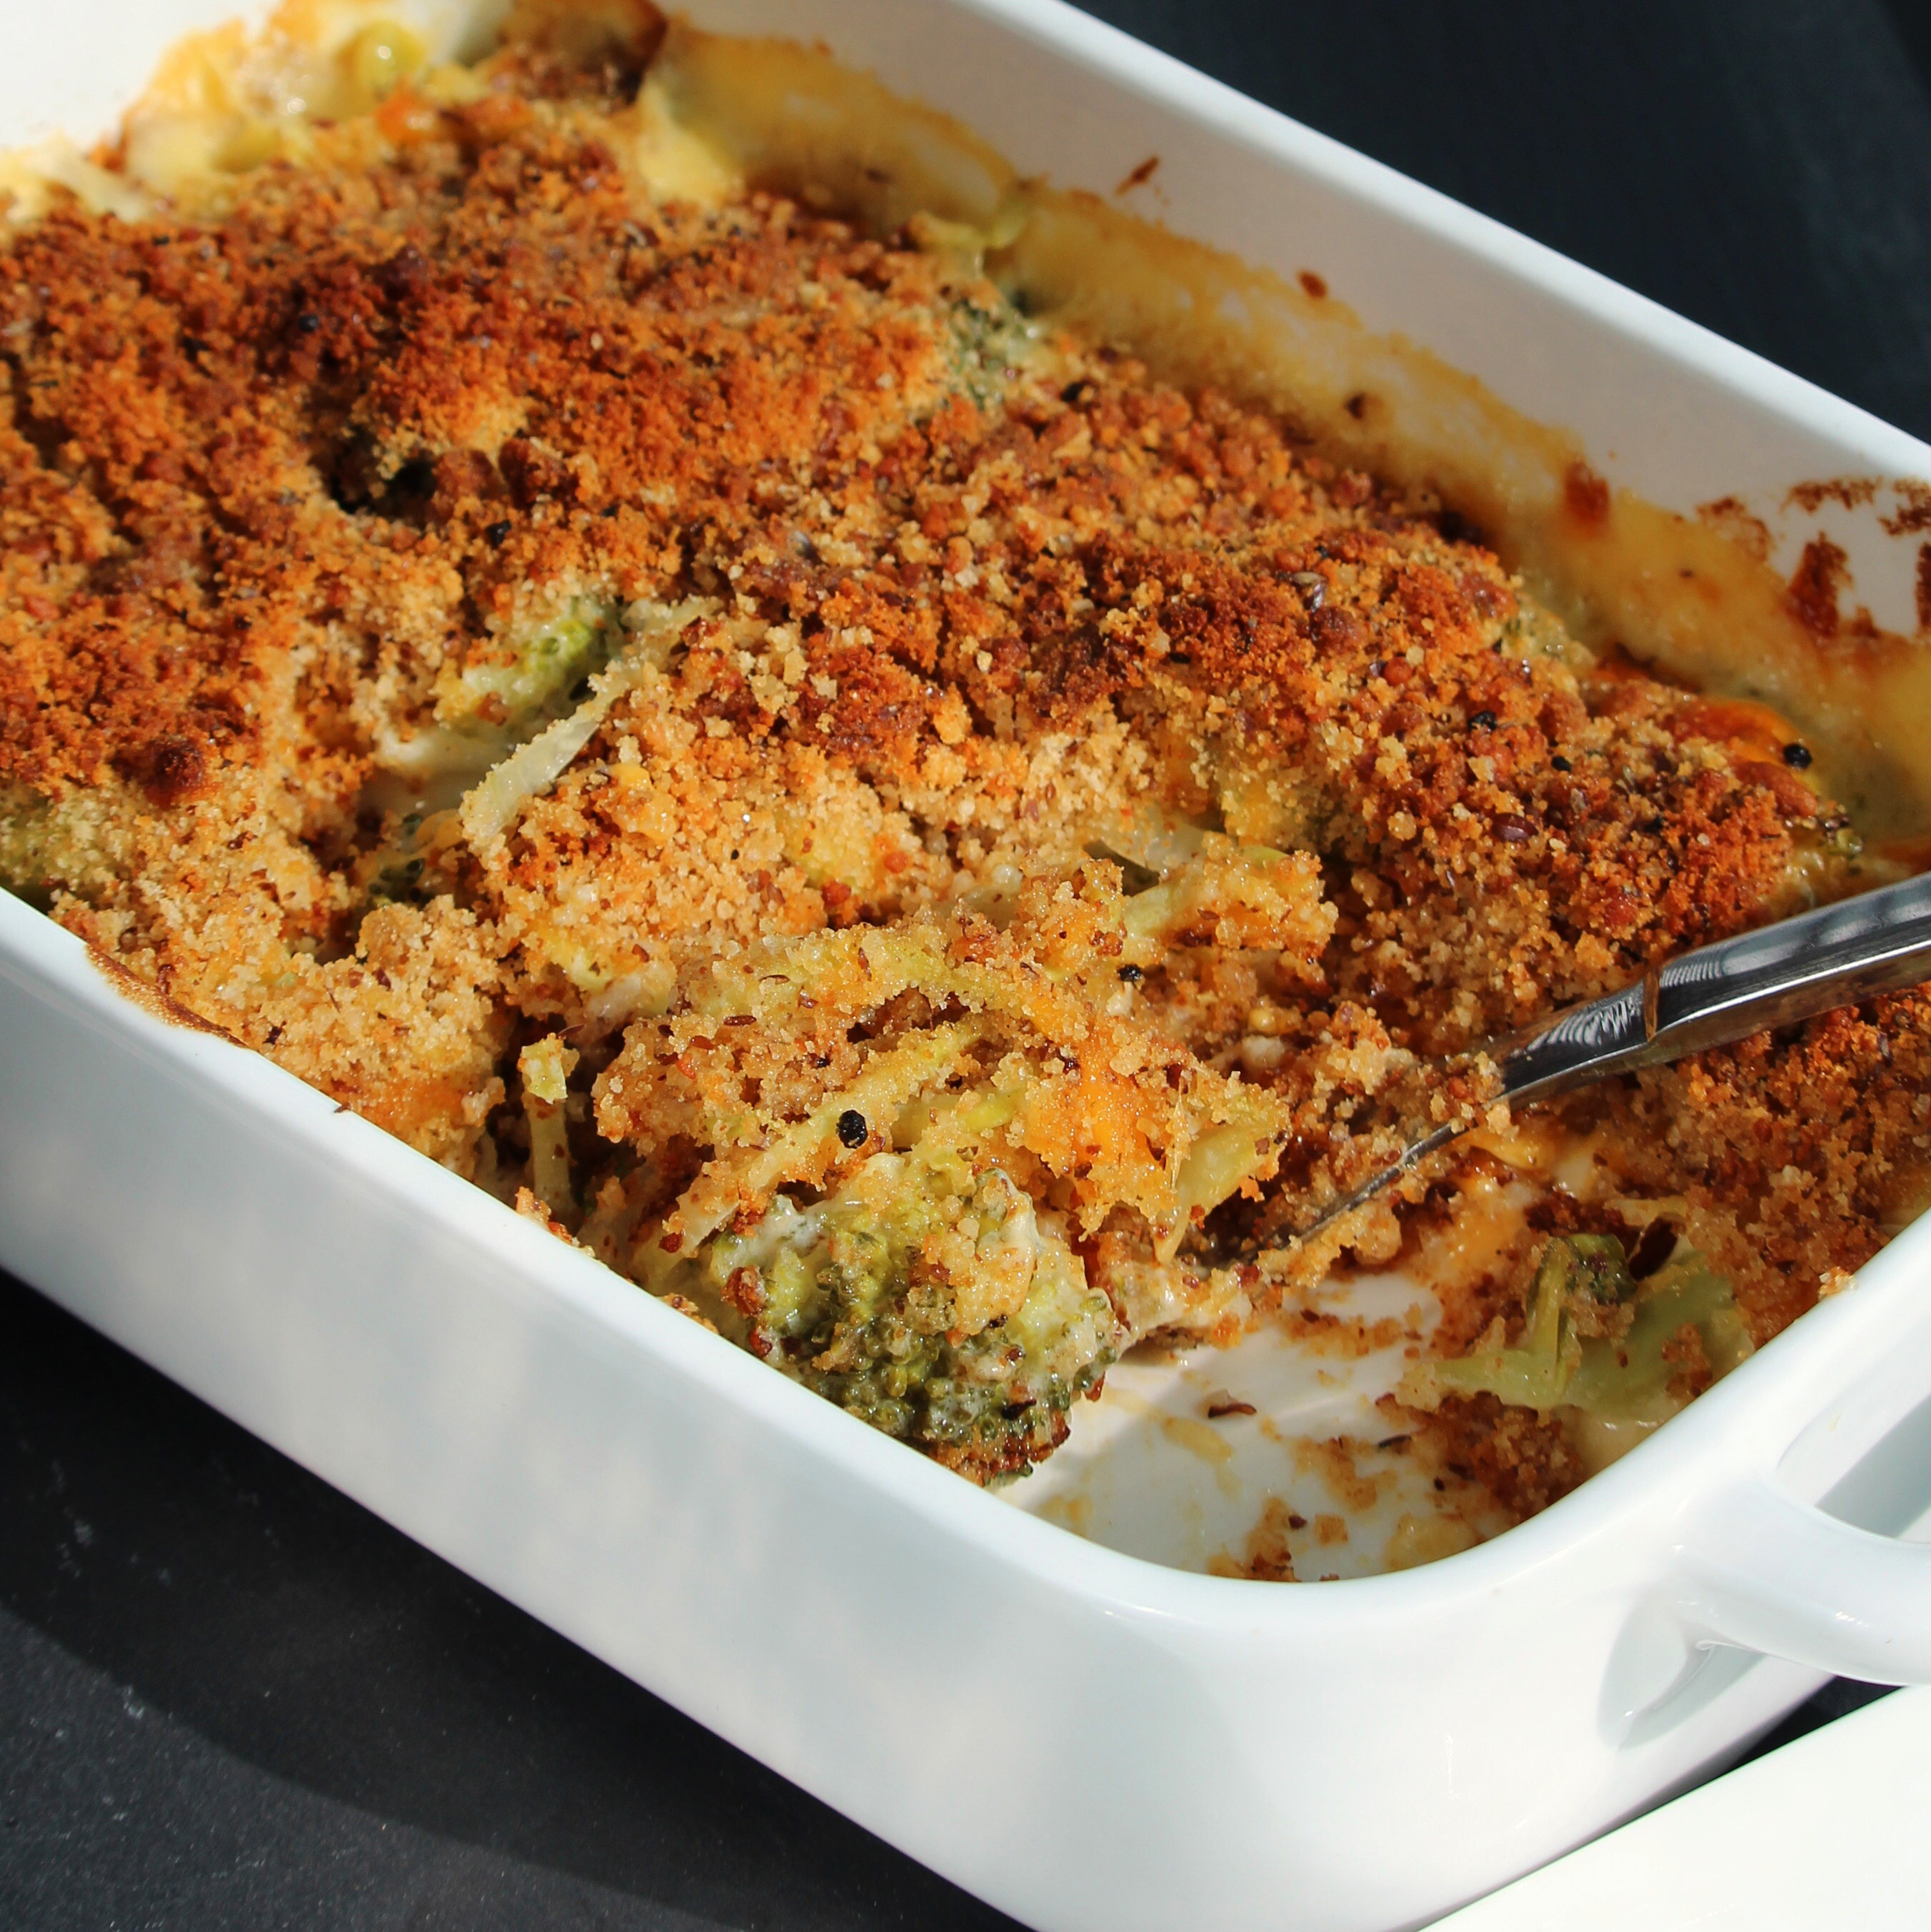 Broccoli Crumble